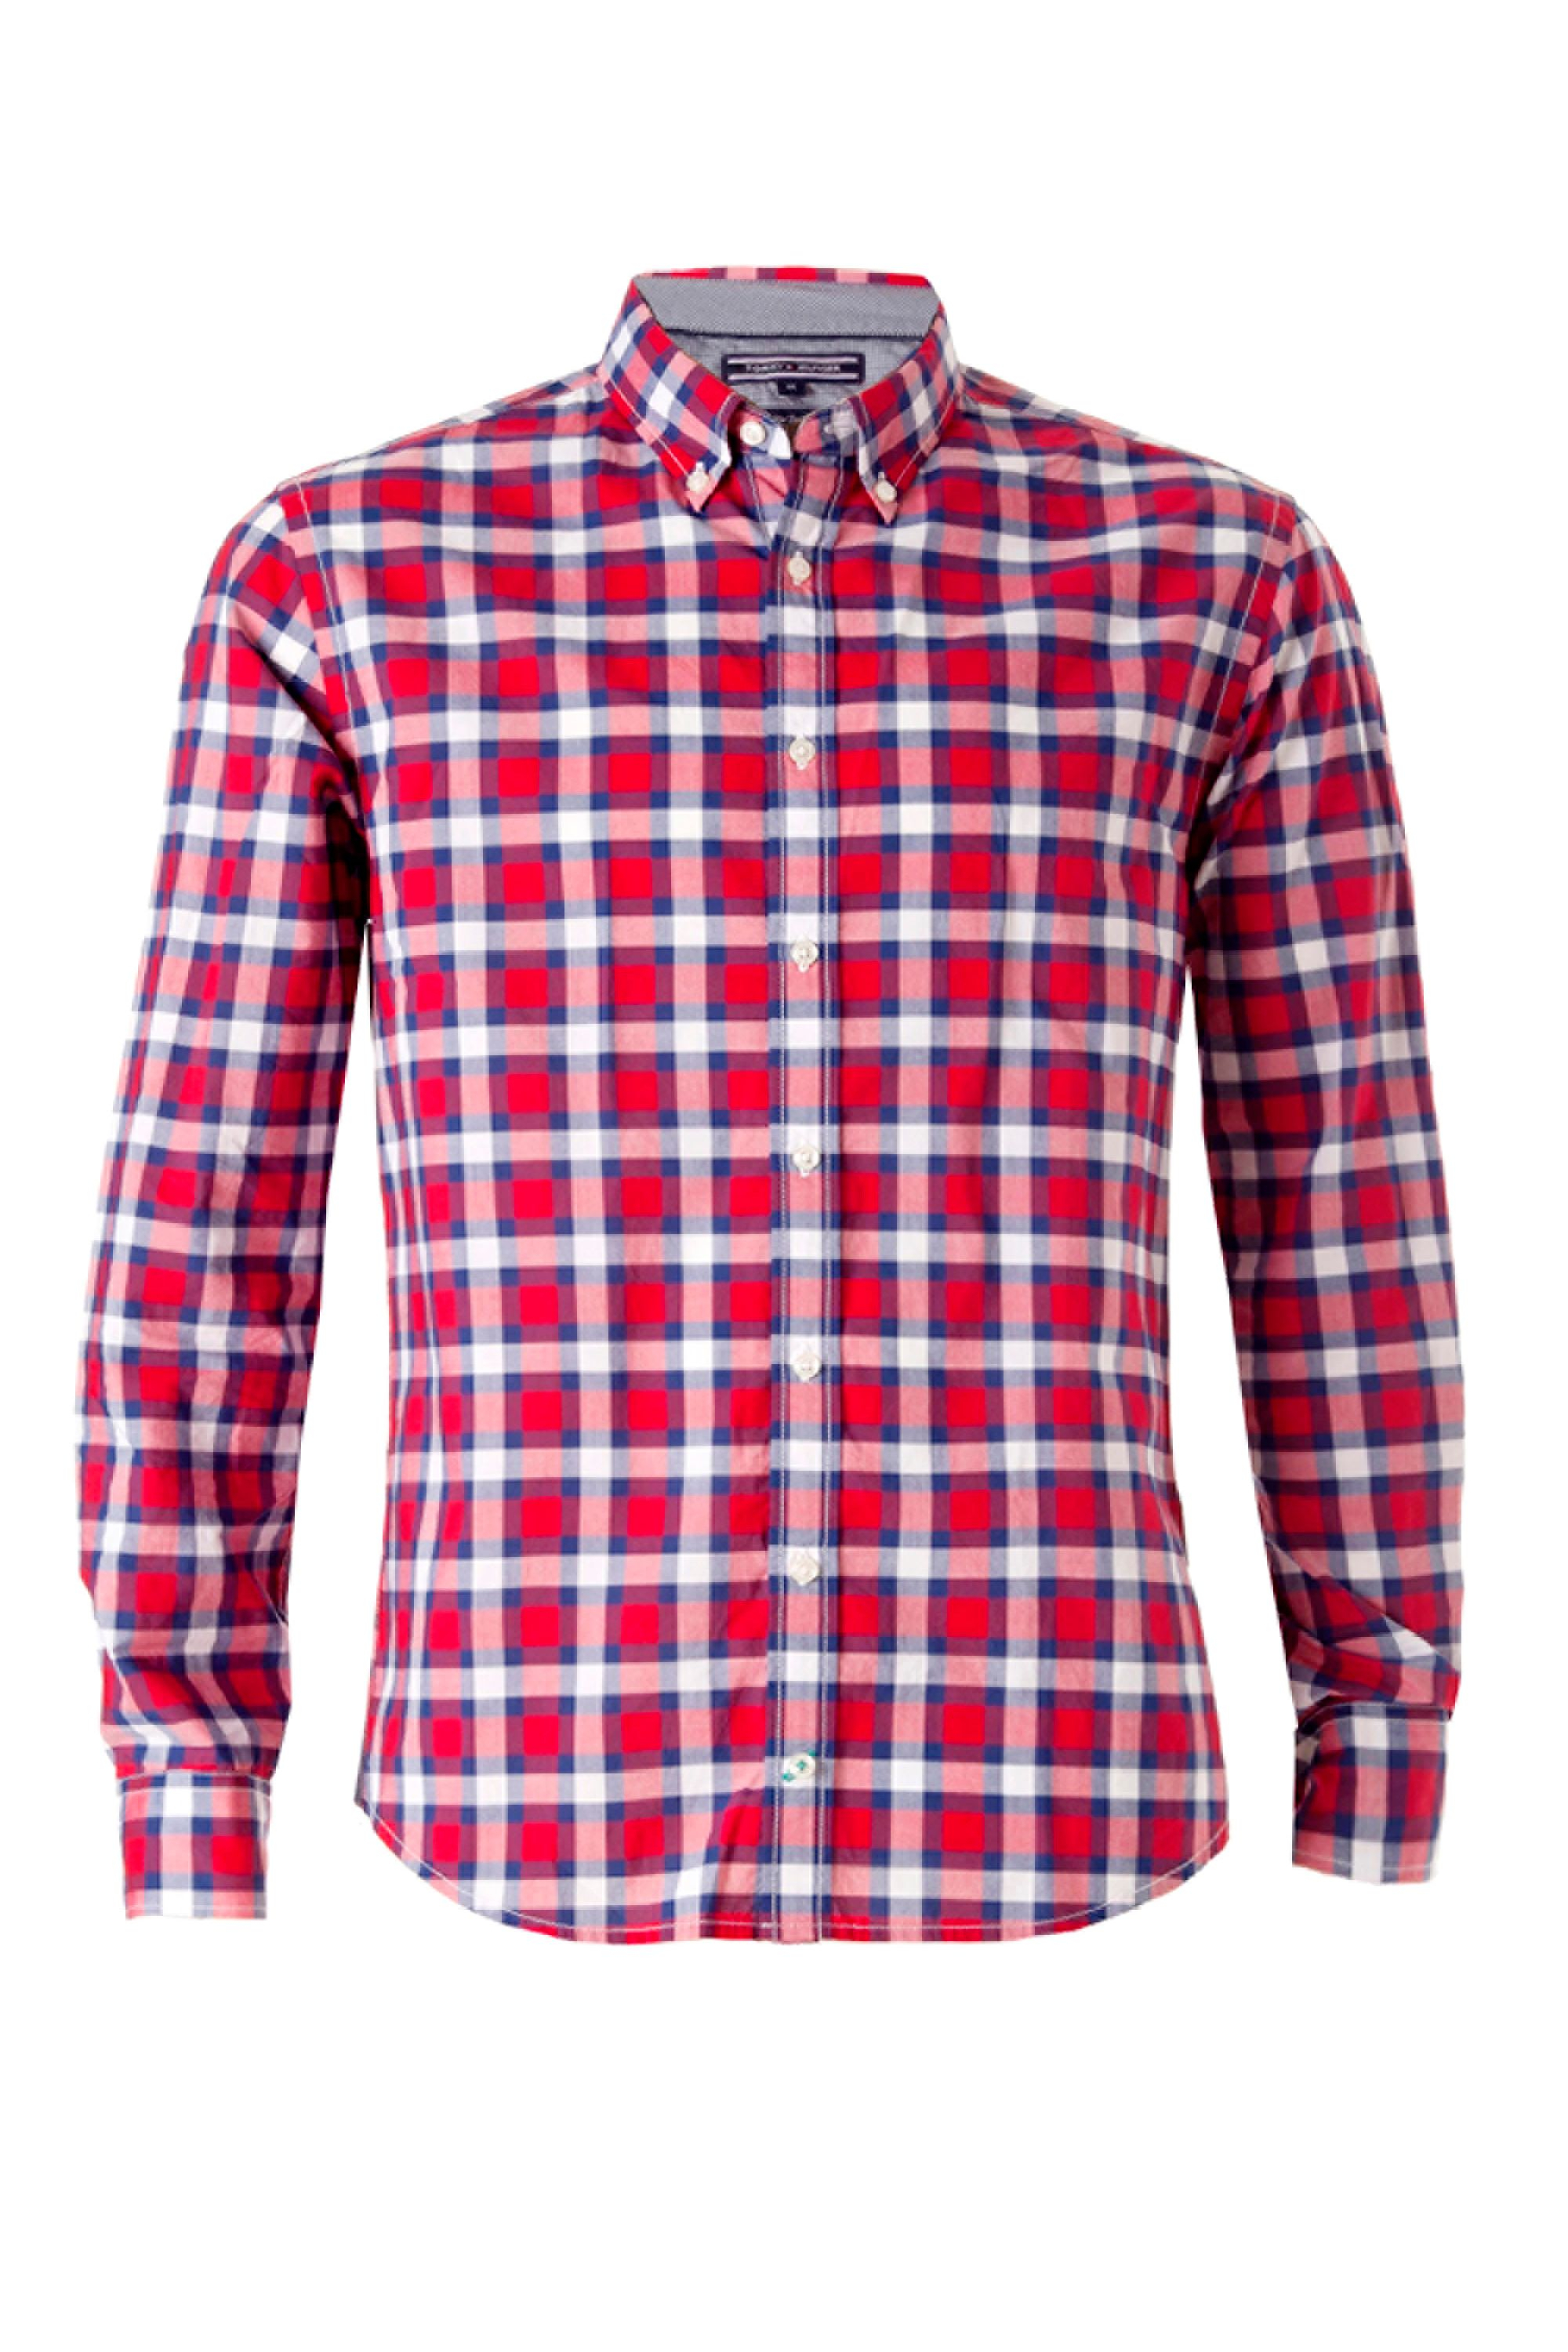 Tommy Hilfiger Koby Check Shirt In Red For Men Lyst